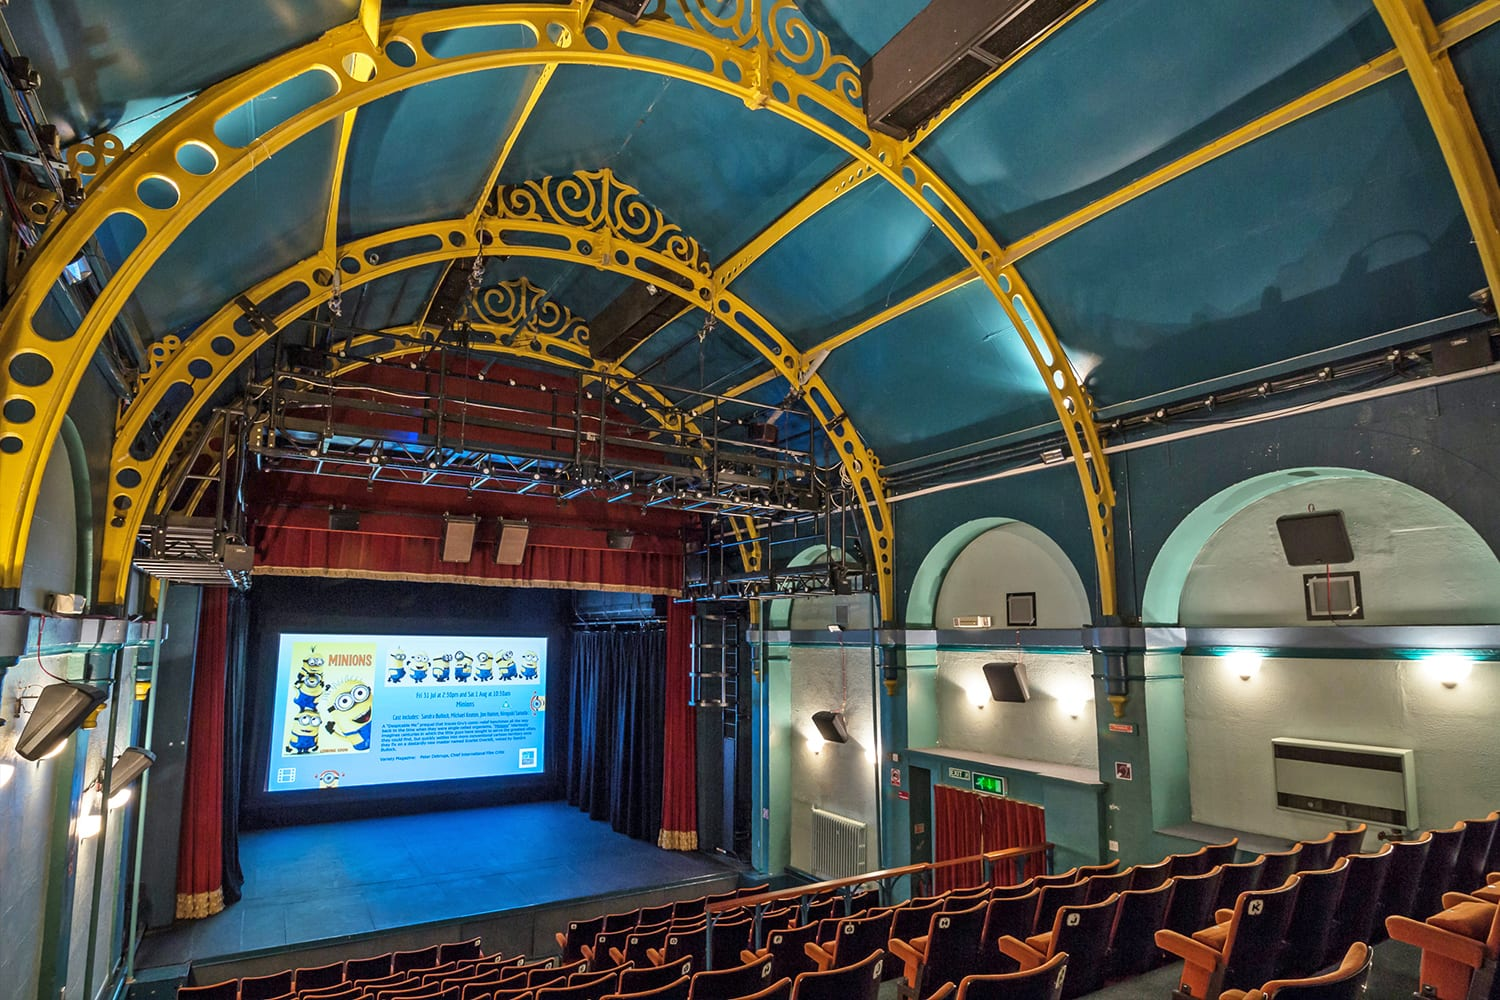 Corn Exchange Theatre, Wallingford